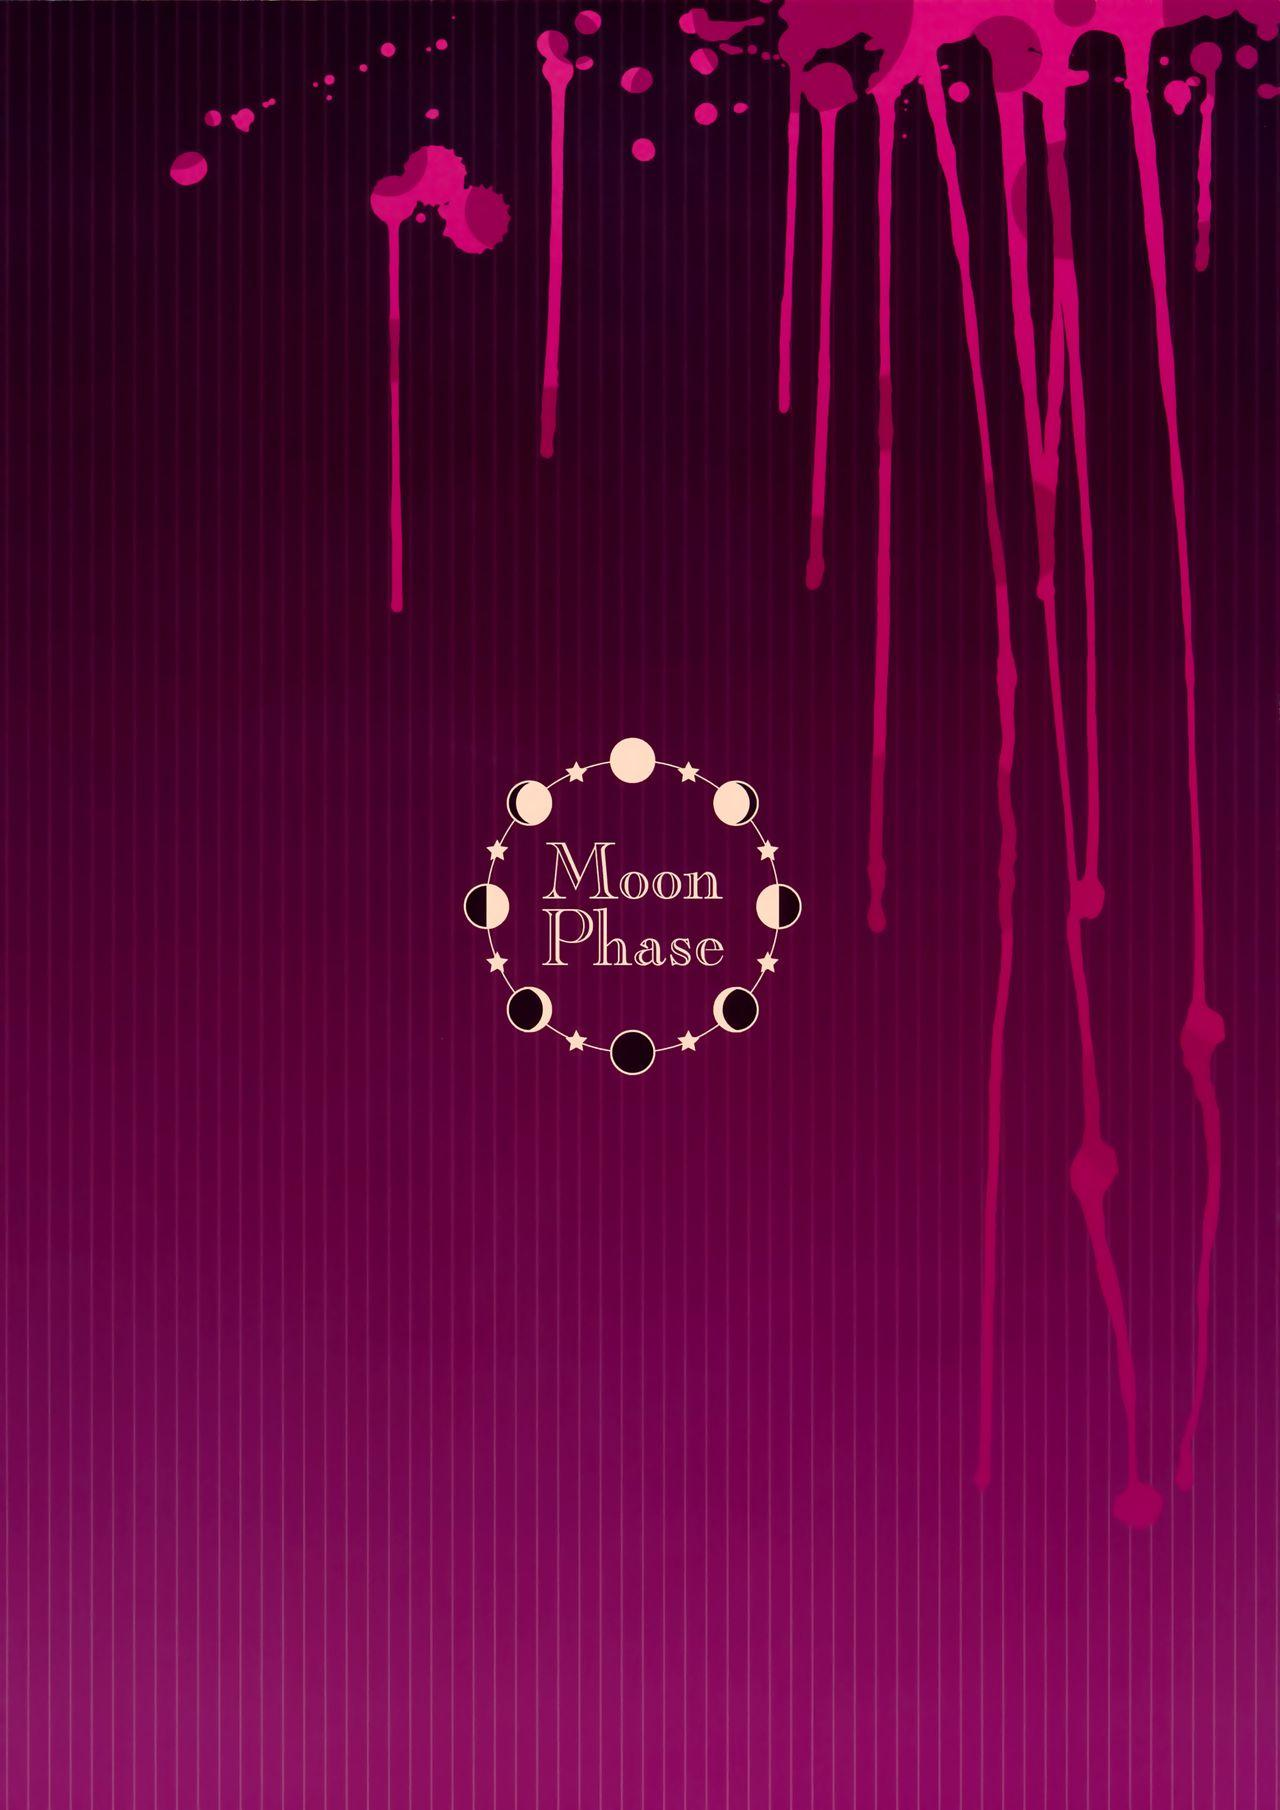 Moon Phase Material 2 29